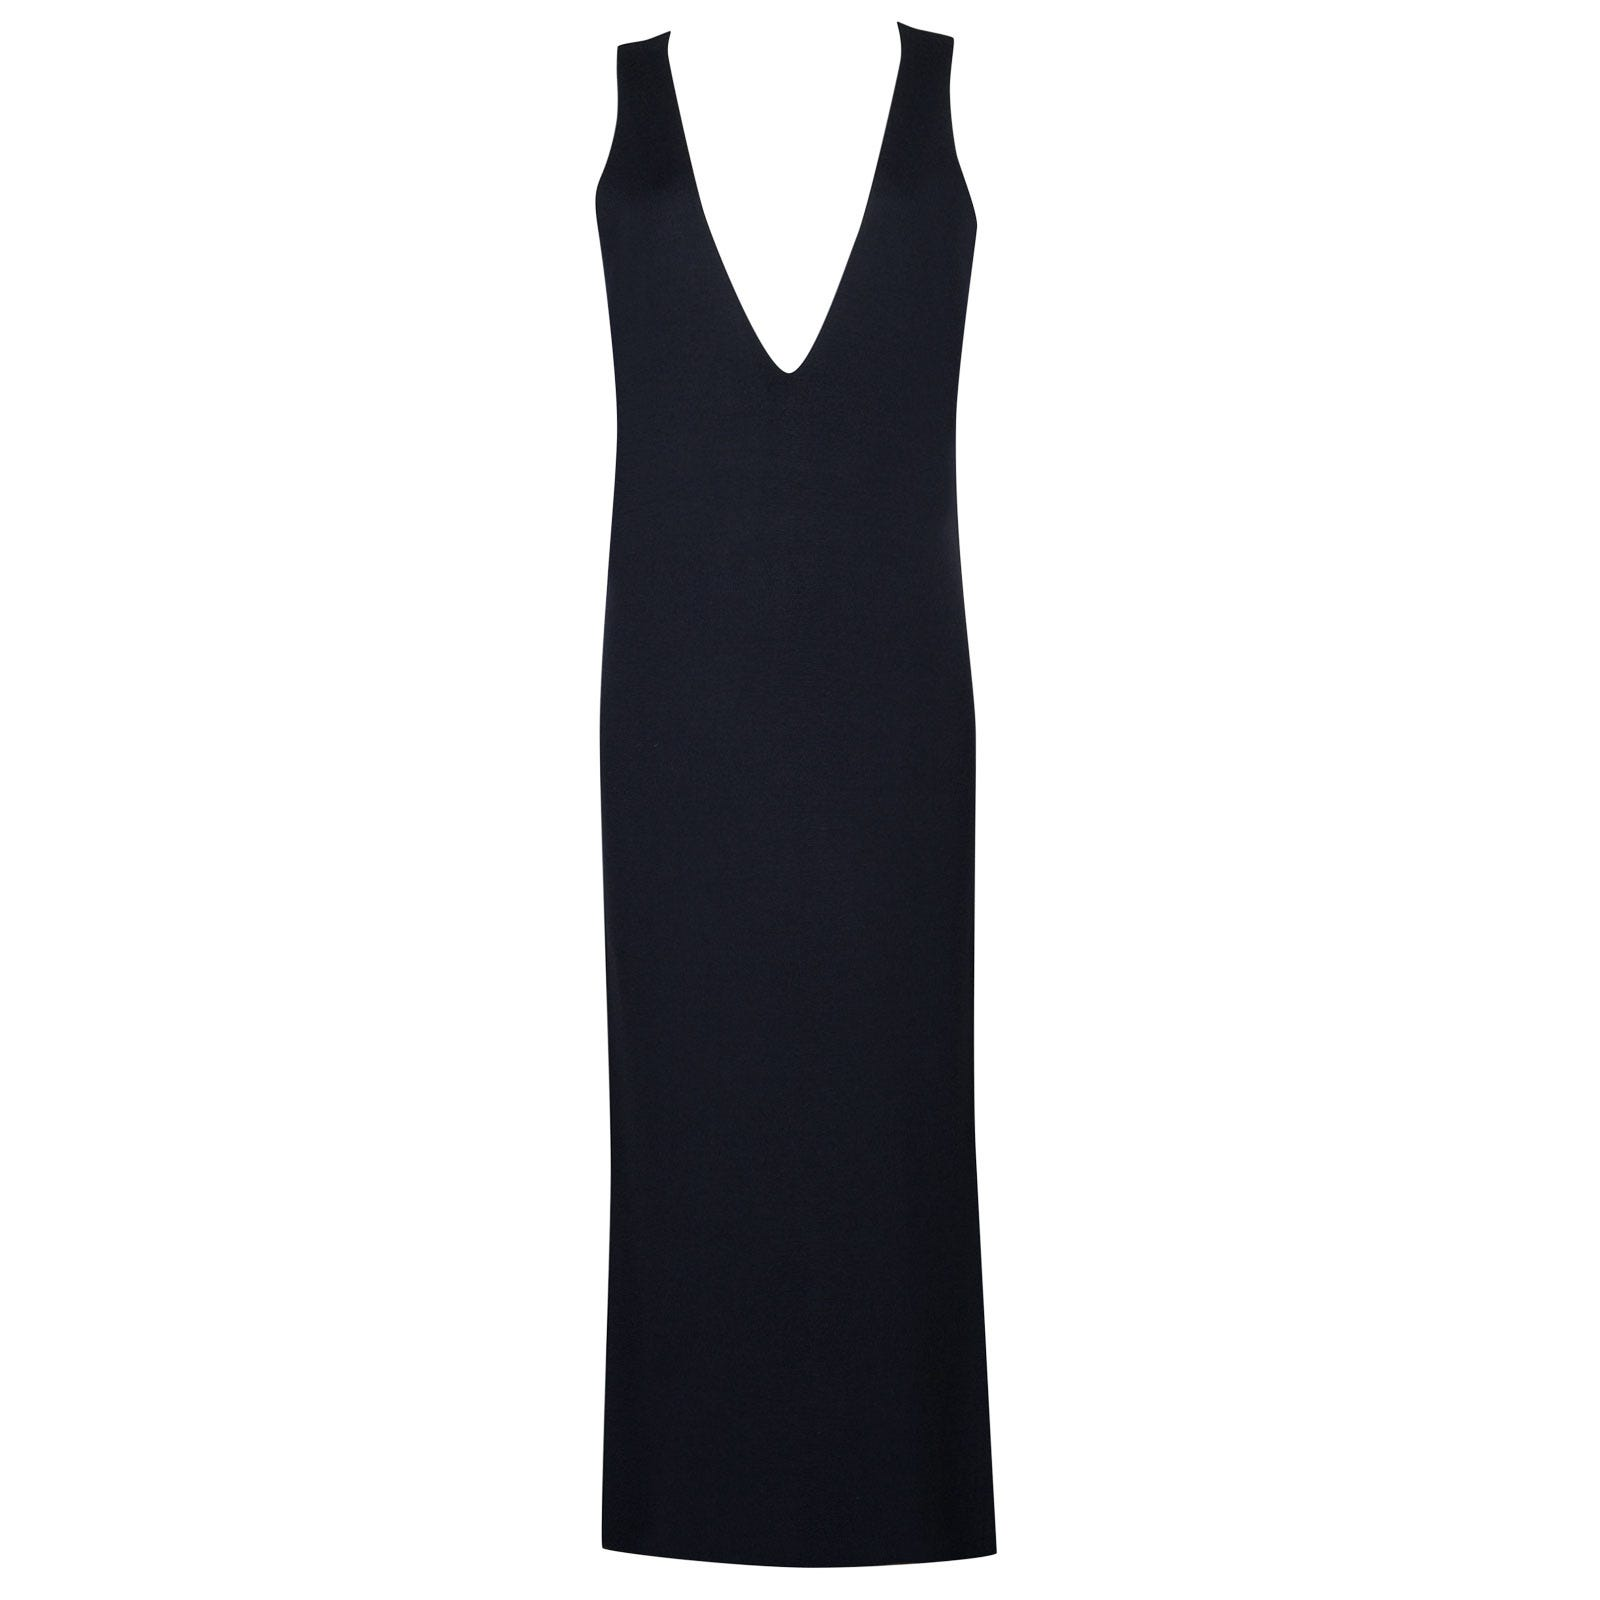 John Smedley Odell Merino Wool Dress in Midnight-L